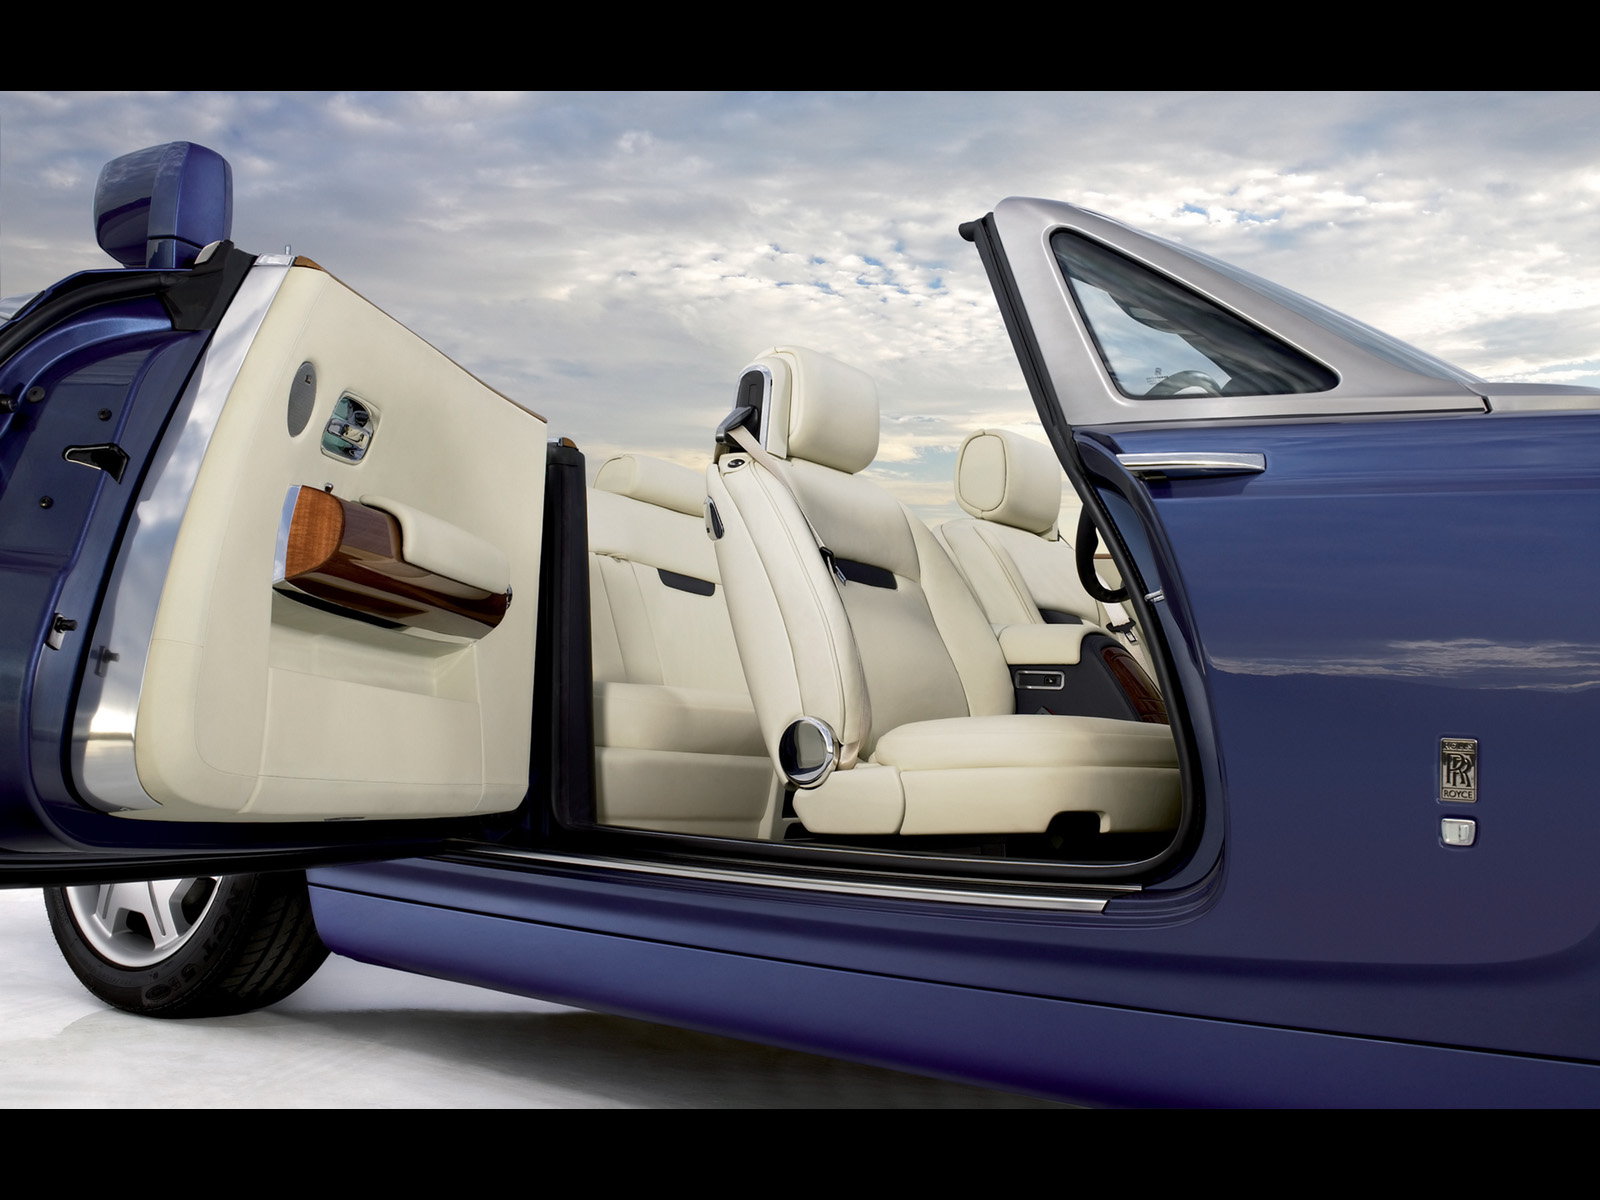 2008 Rolls royce Phantom Drophead Coupe #17